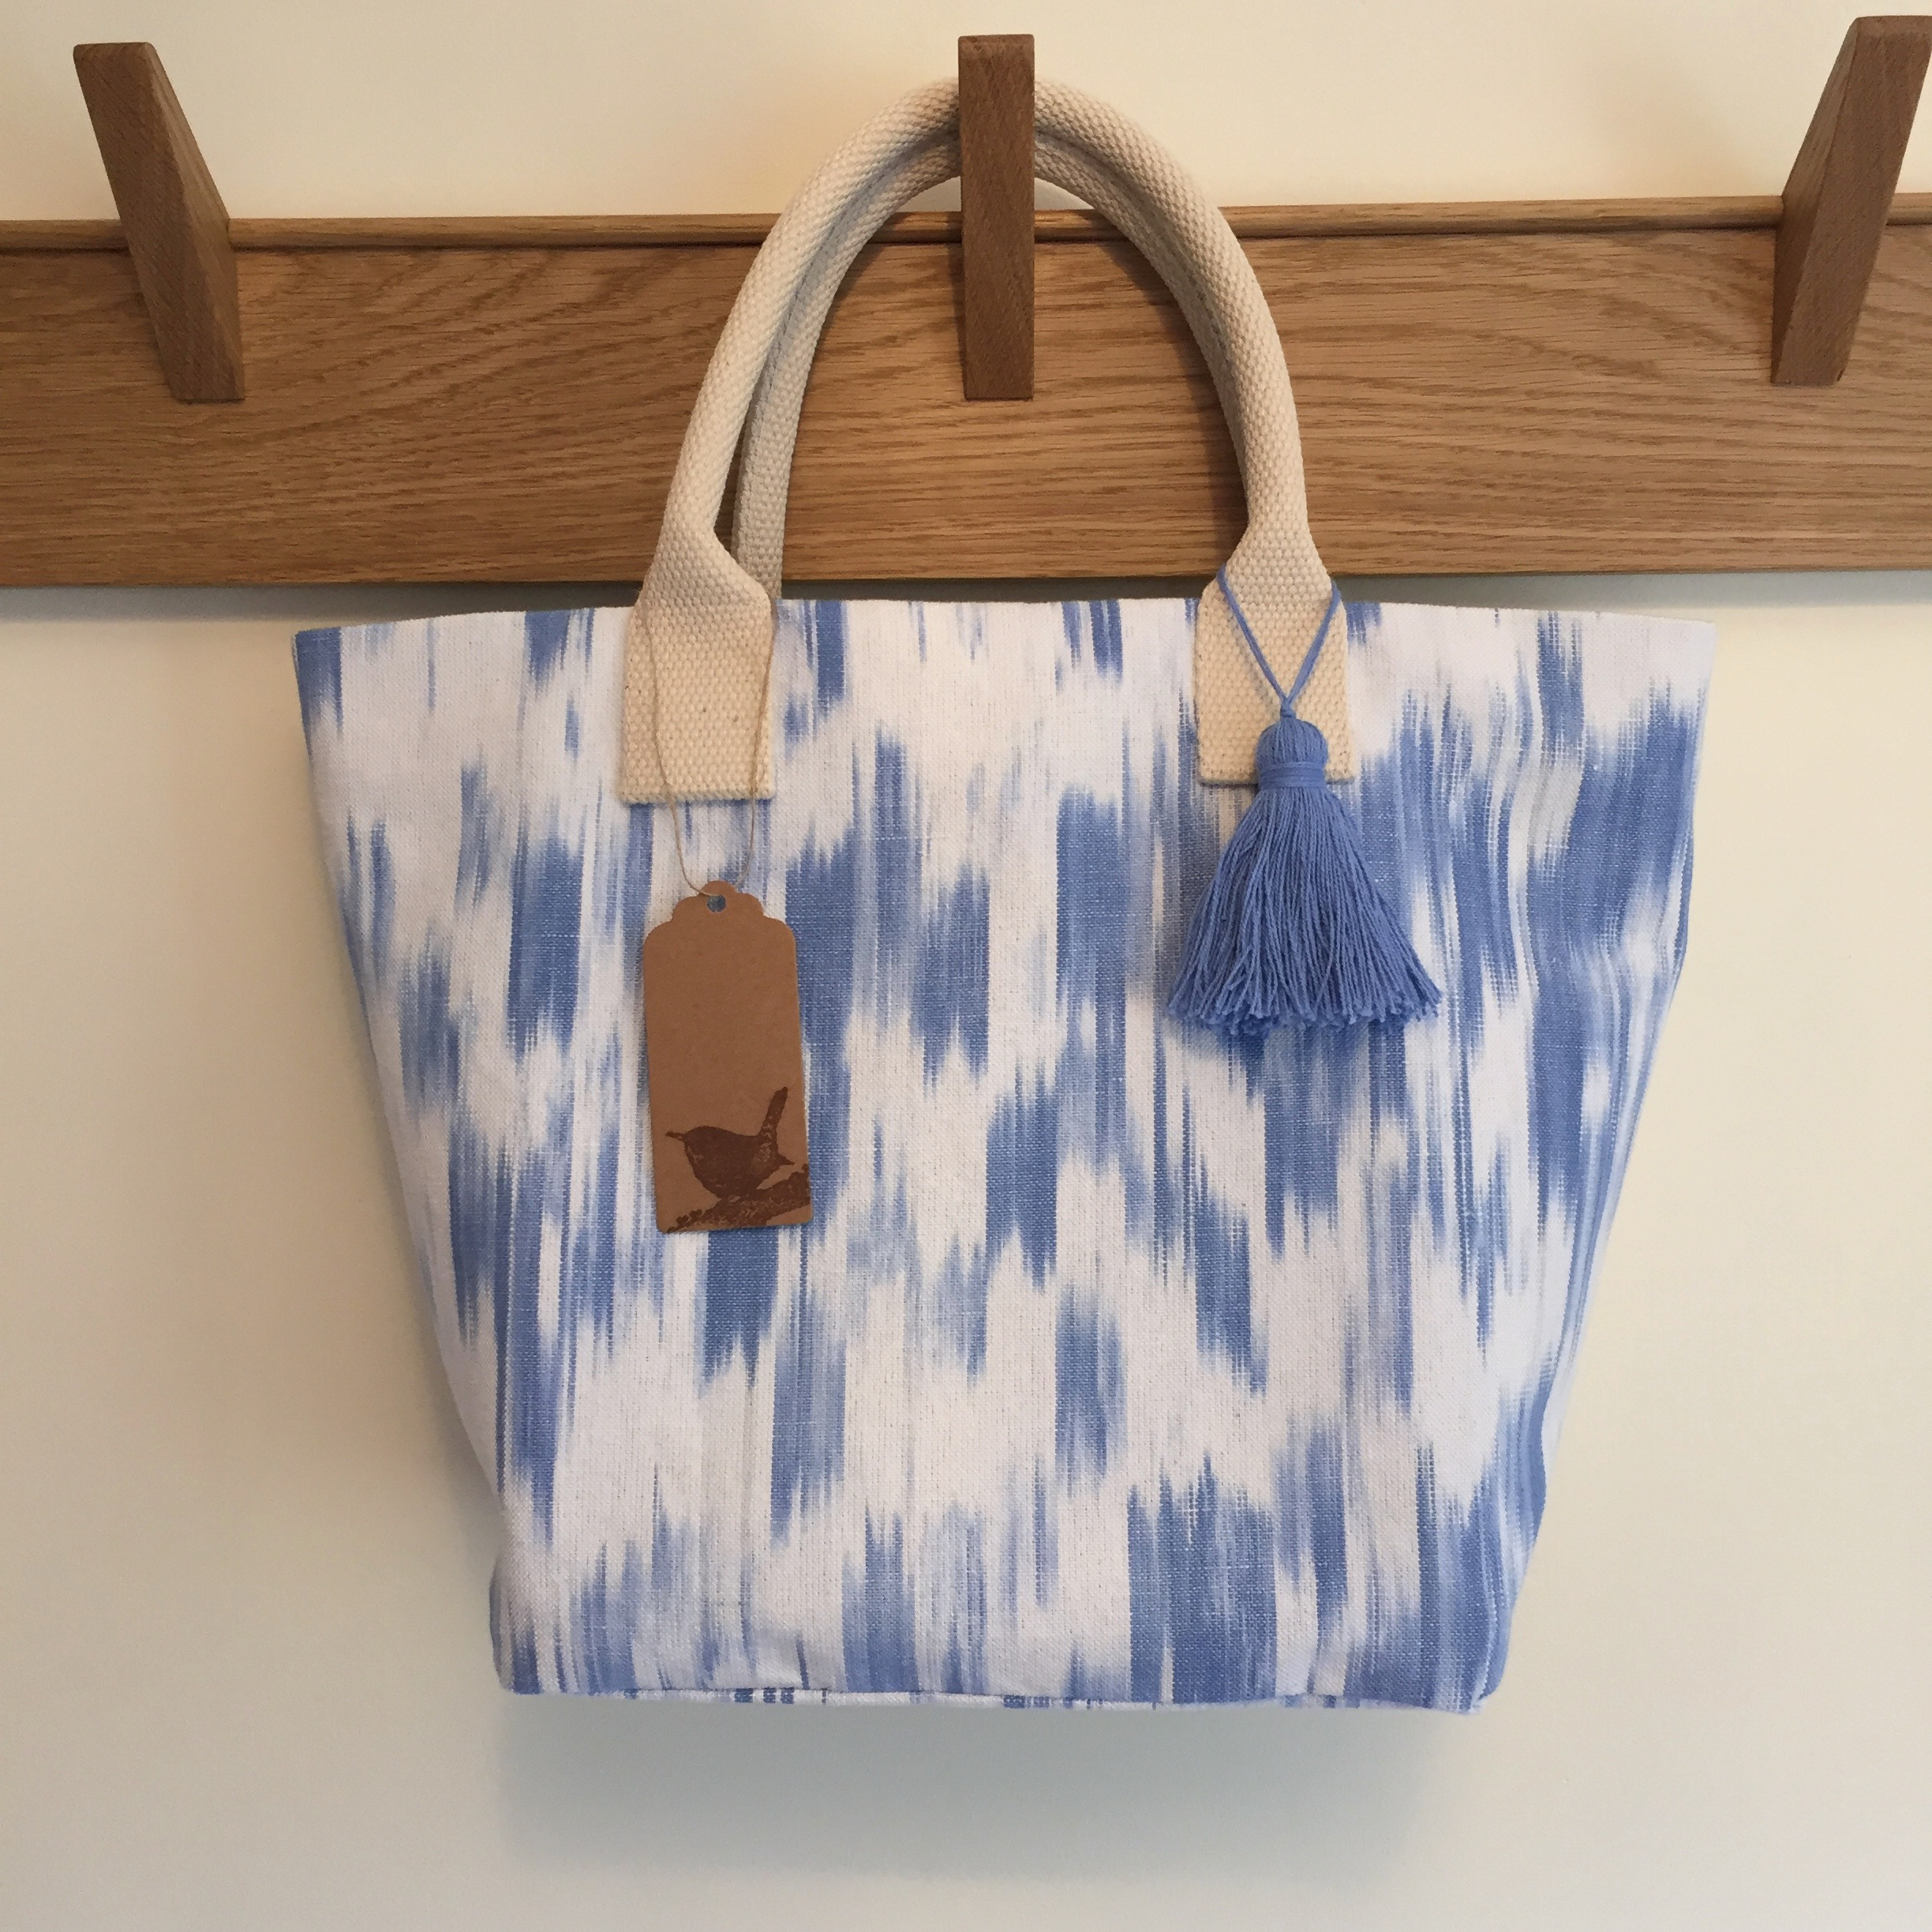 Cornflower Blue Ikat with Tassel